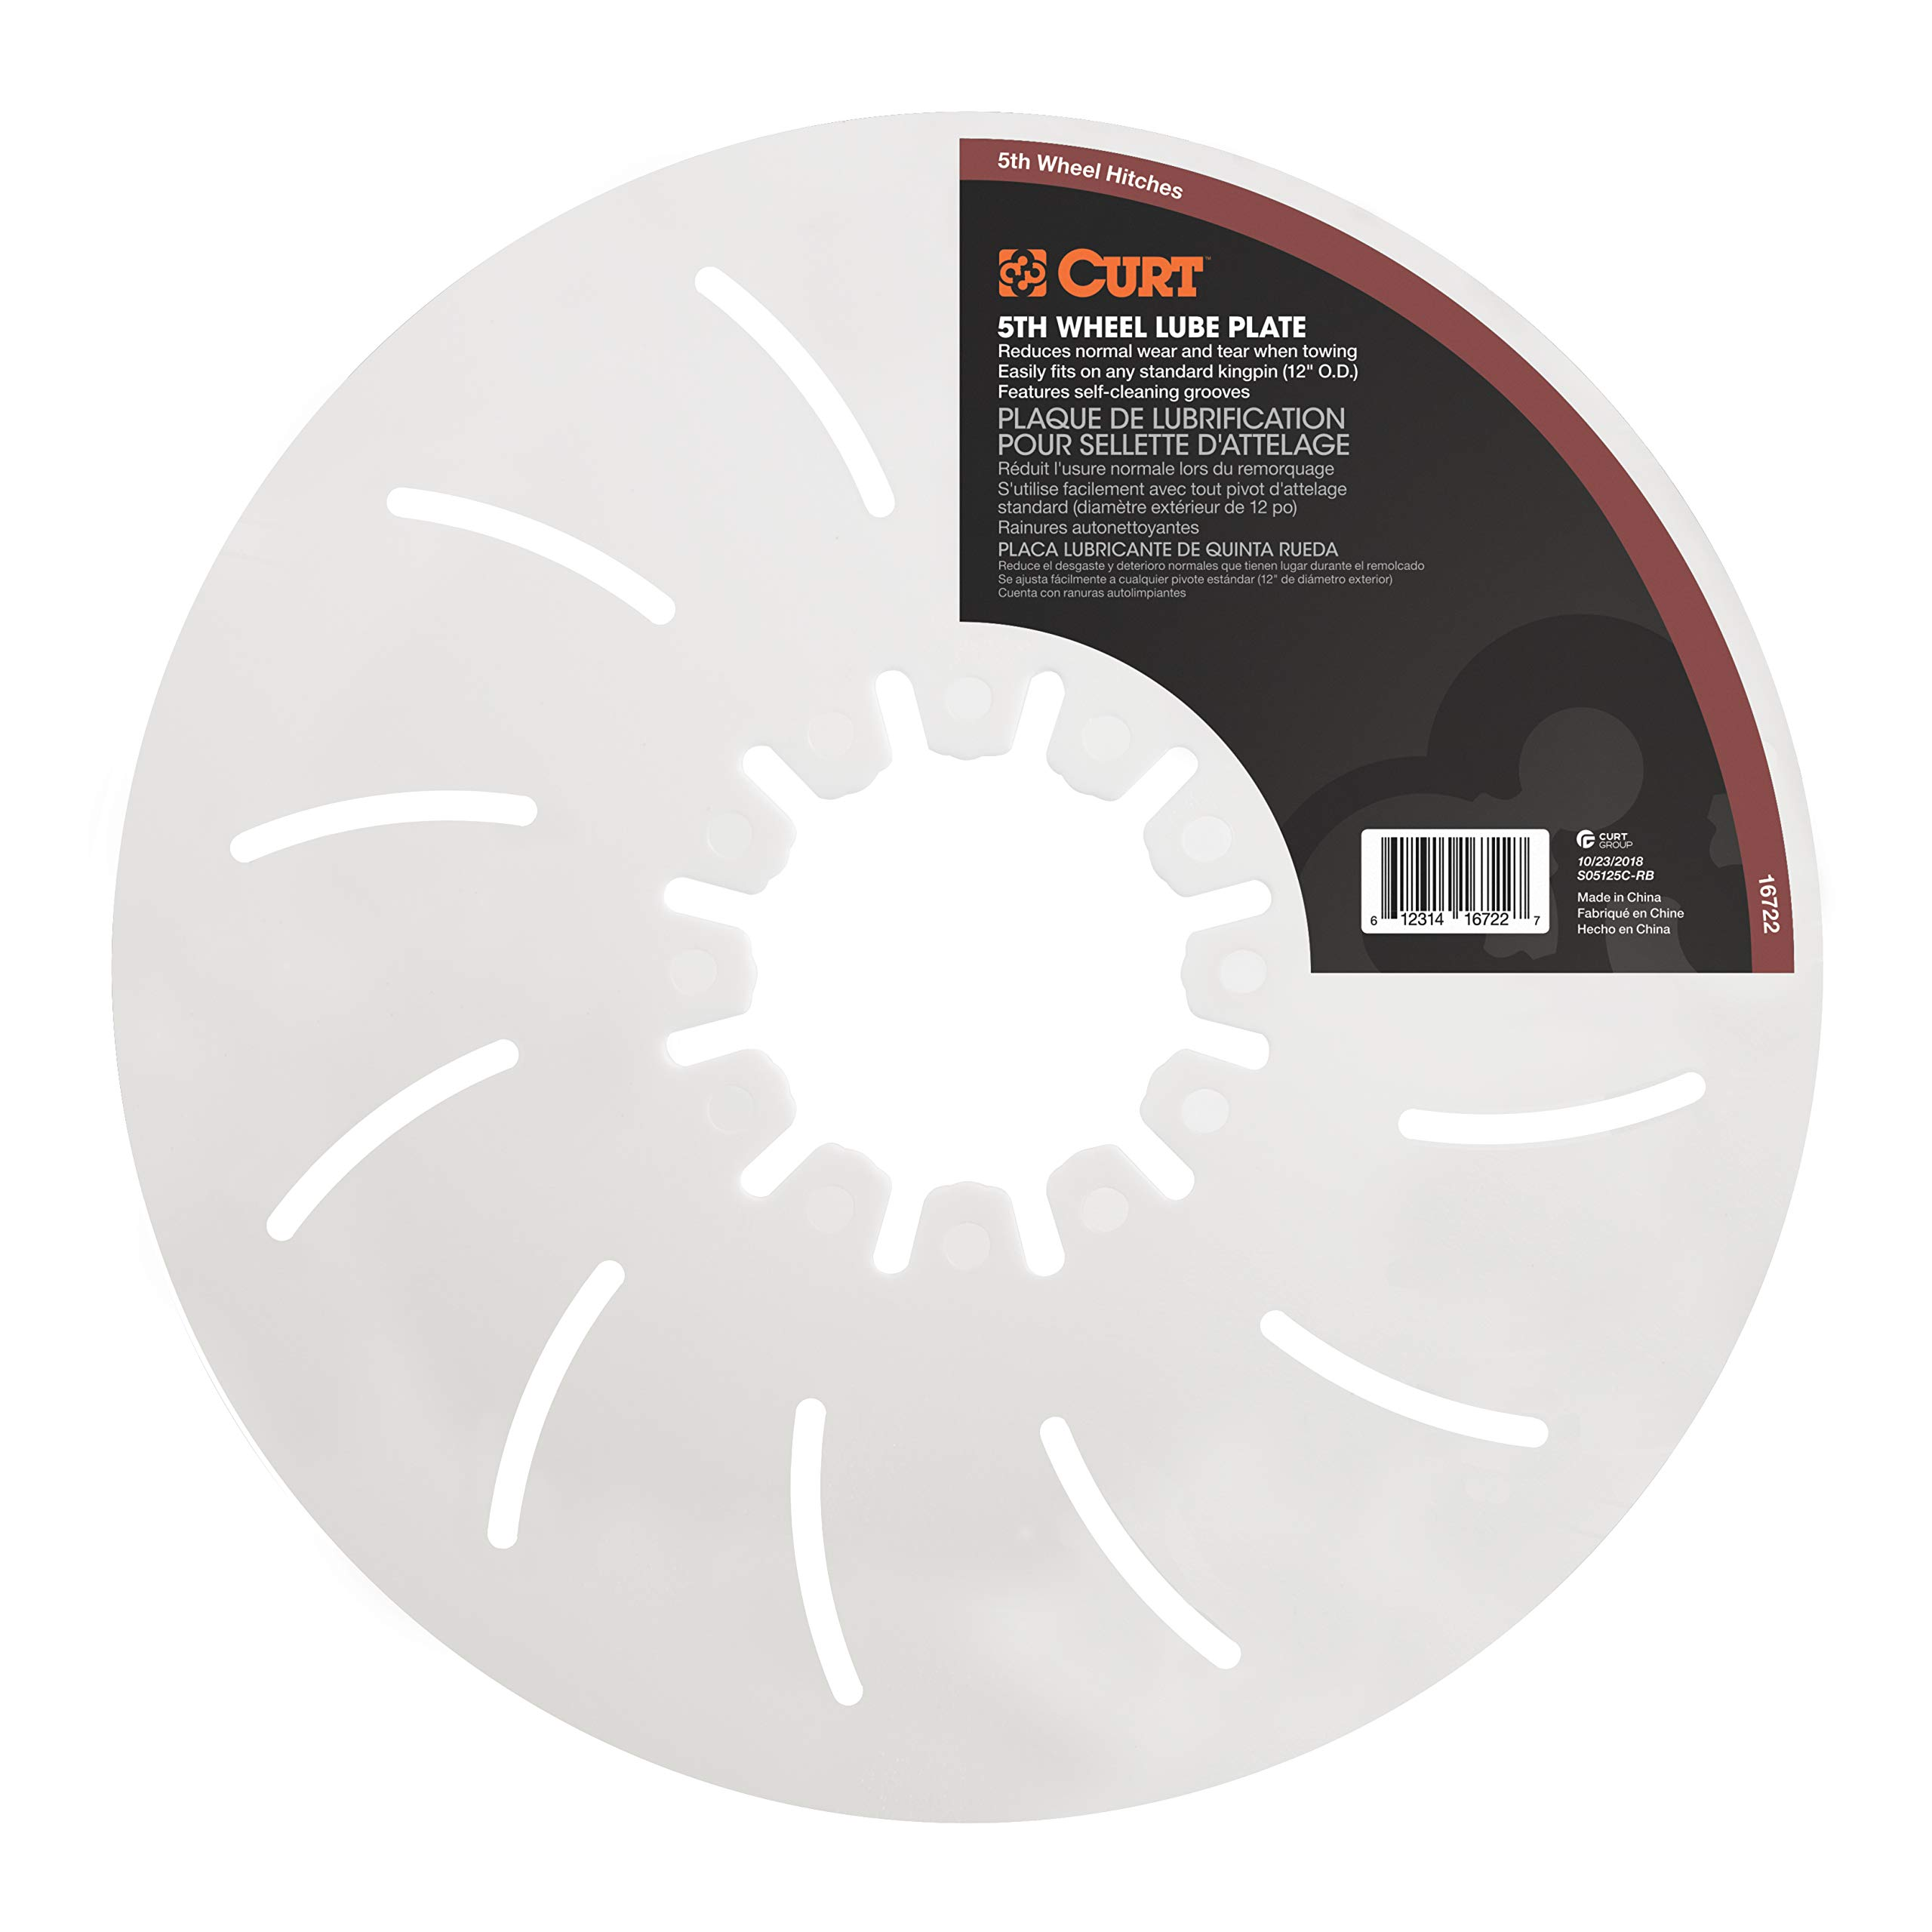 CURT 16722 White 5th Wheel Hitch Lube Plate, 12-Inch Diameter by CURT